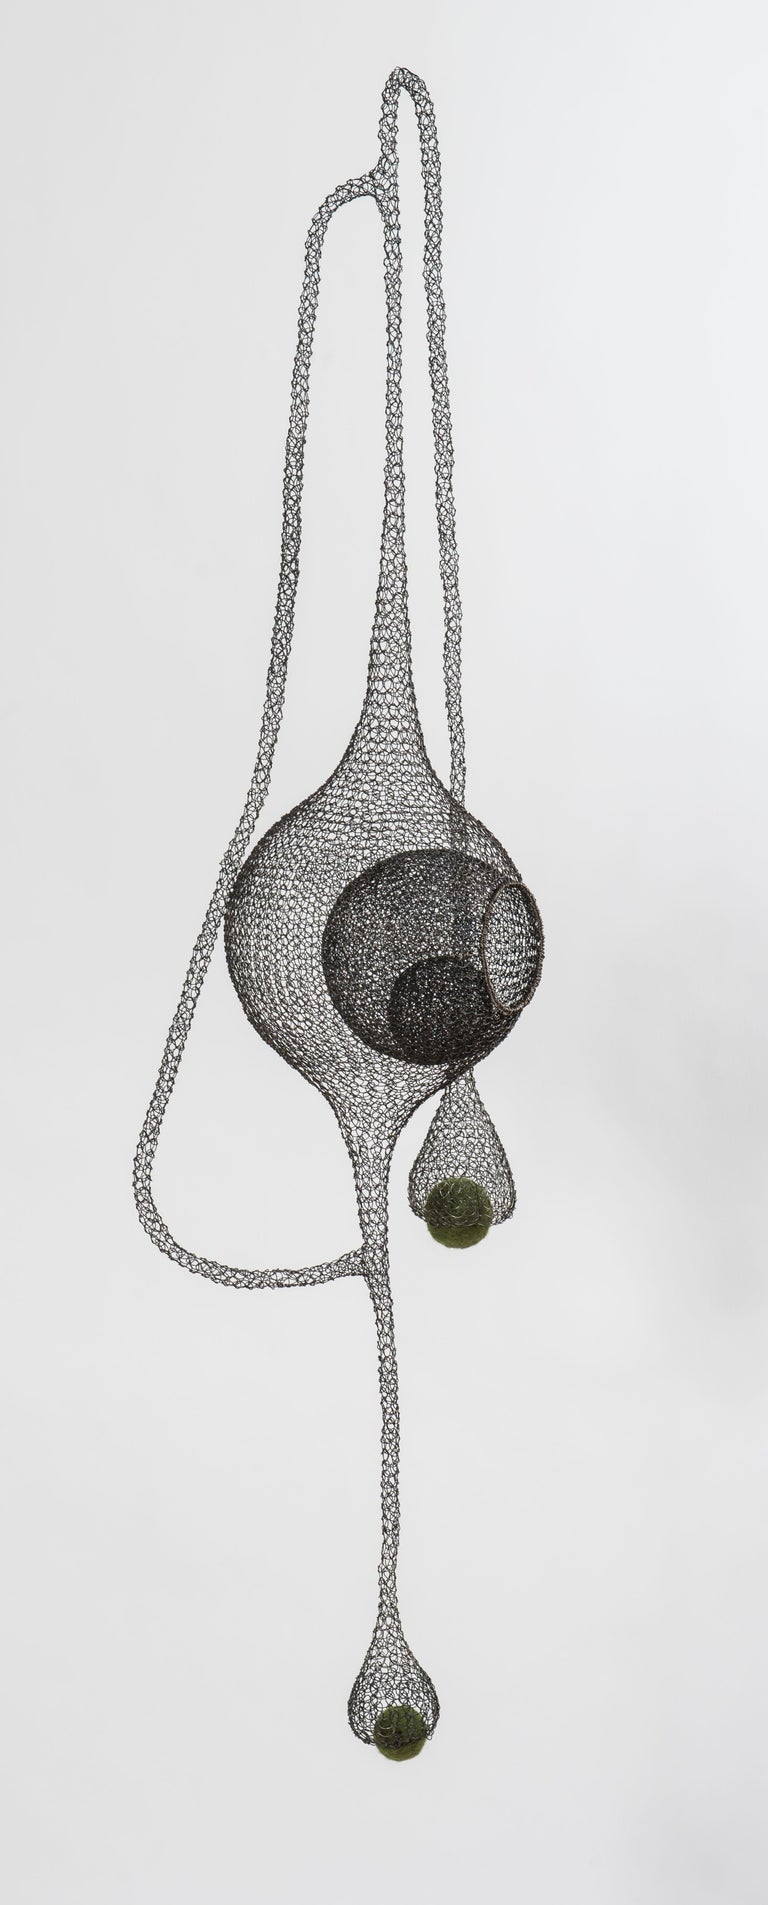 An airy meshwork of aesthetic shapes combining with felted green wool, this sensual sculpture named « Safe harbor III» is created and entirely handmade from black annealed iron wire and felting wool by artist Delphine Grandvaux. The artist says: